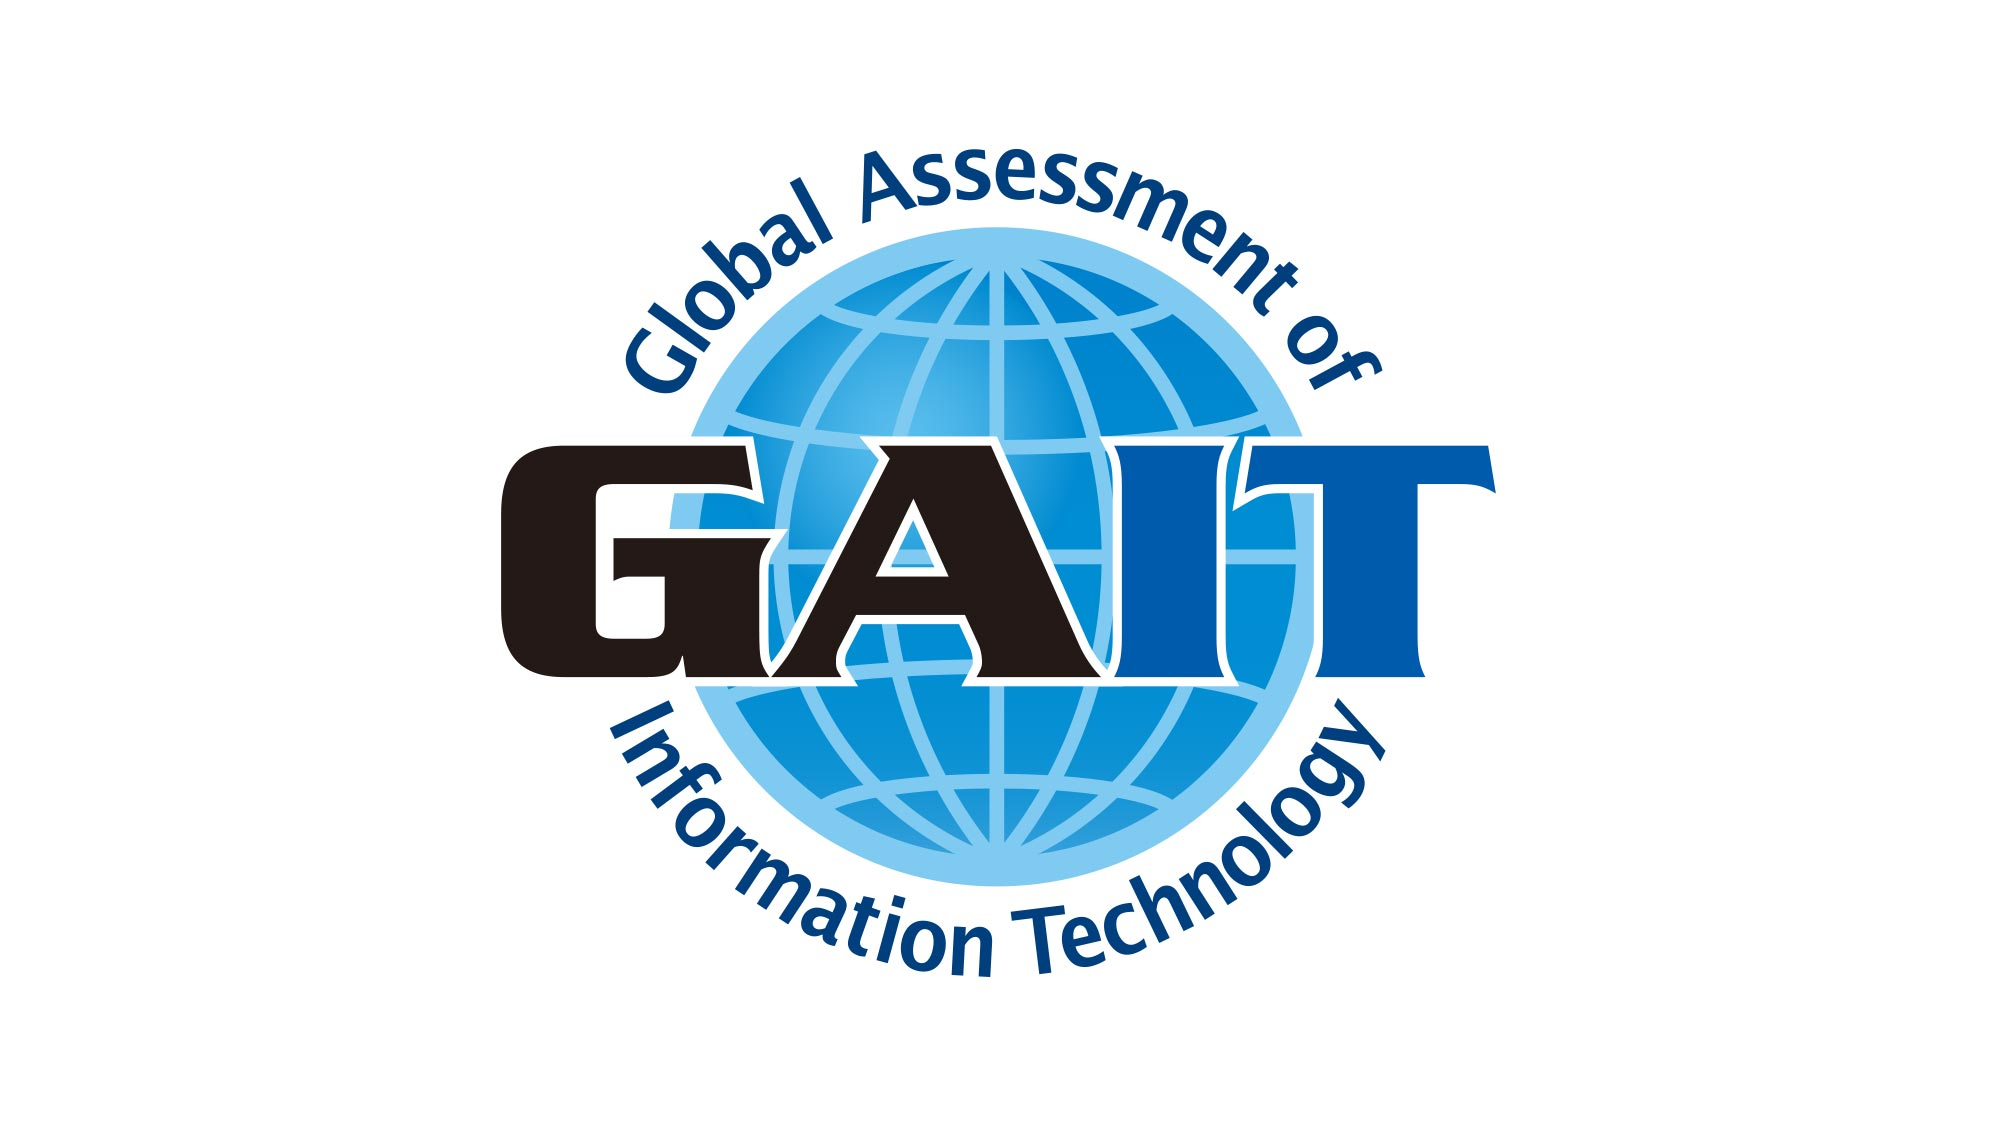 GAIT(Global Assessment of Information Technology)